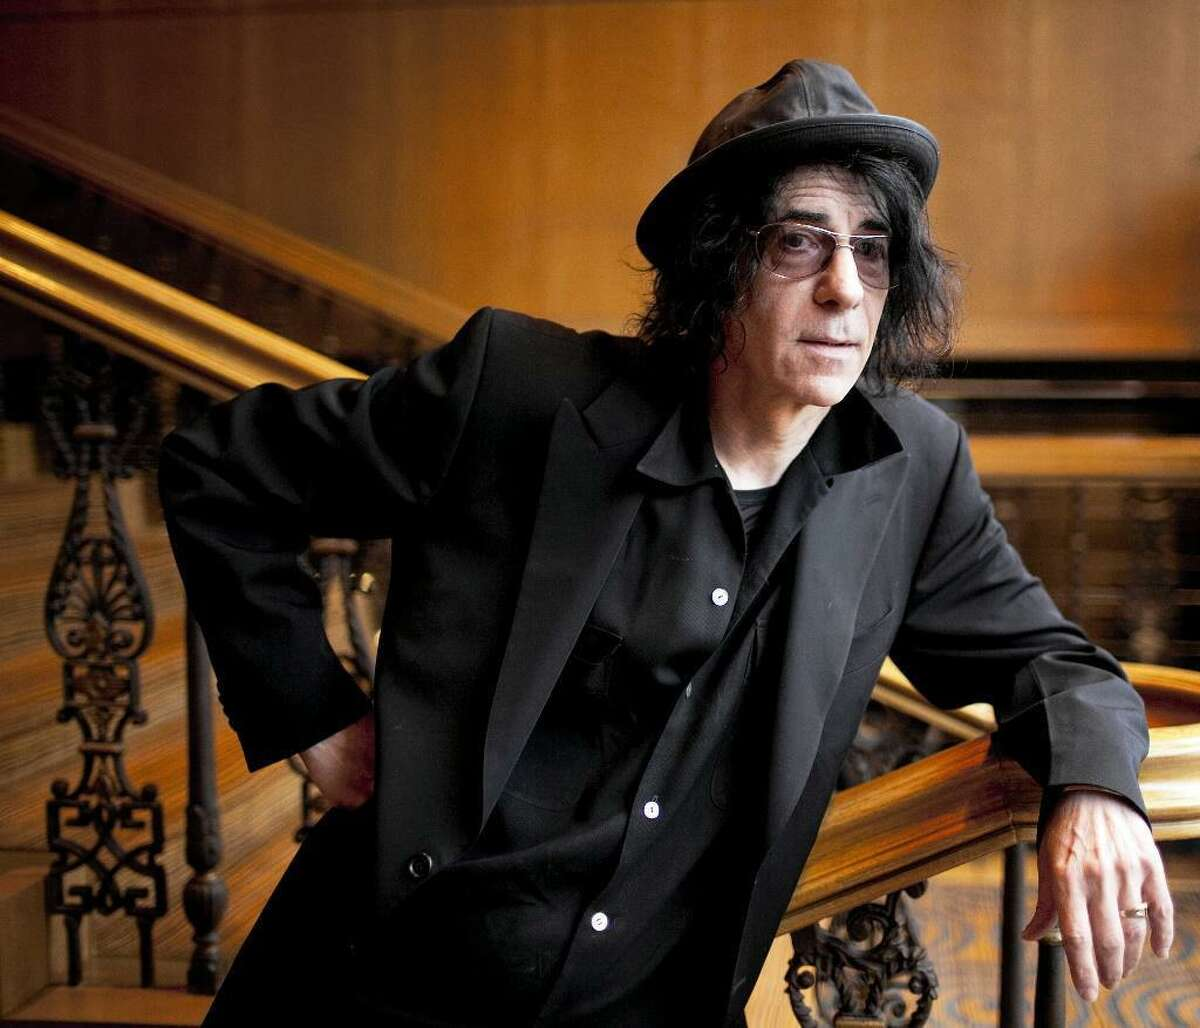 Singer Peter Wolf is scheduled to perform Oct. 16 at Infinity Hall in Norfolk.